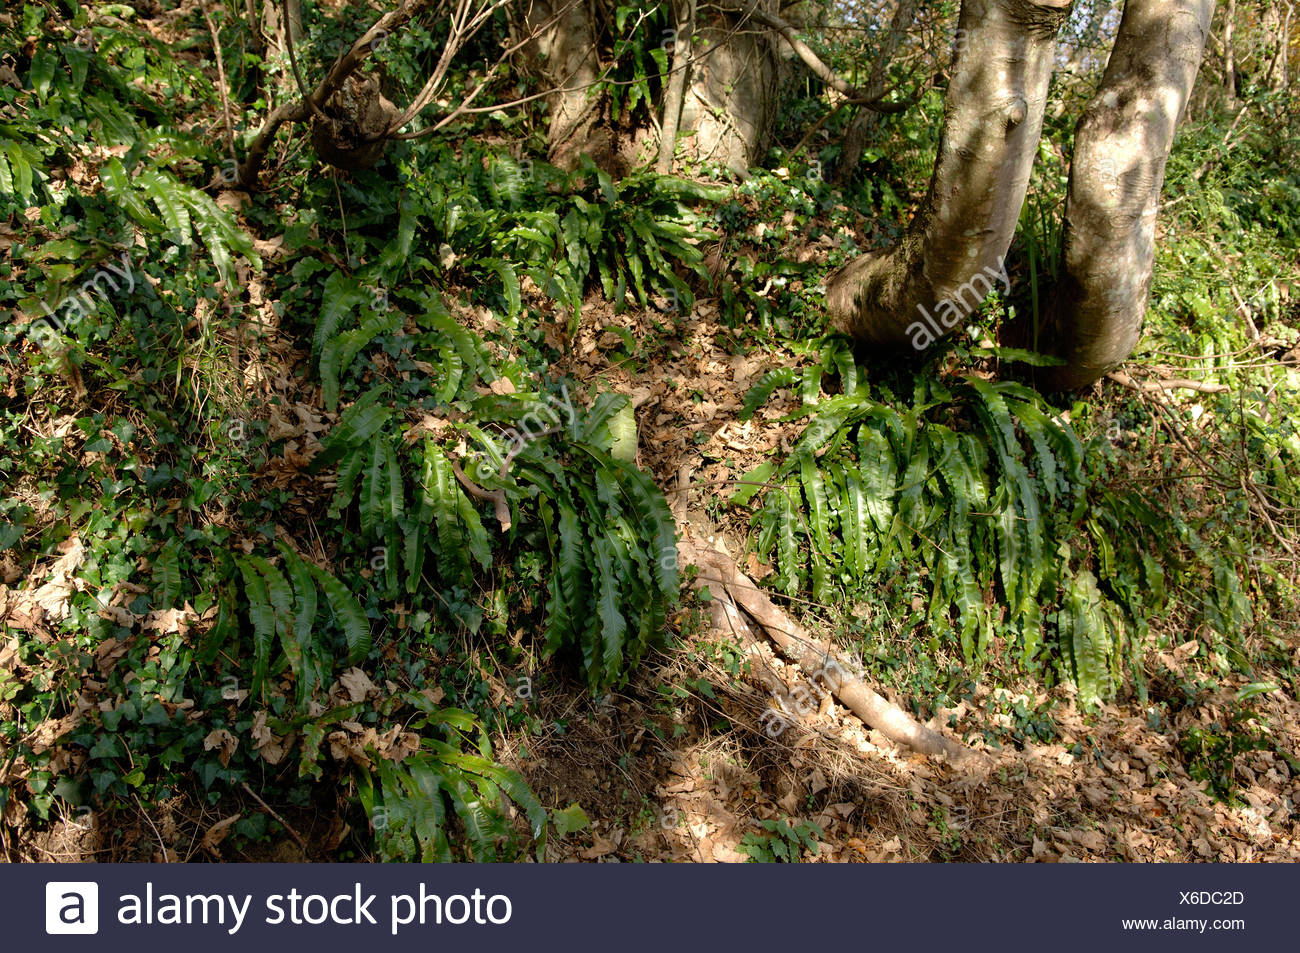 Large harts tongue ferns Asplenium scolopendrium in steeply sloping Devon woodland in autumn - Stock Image